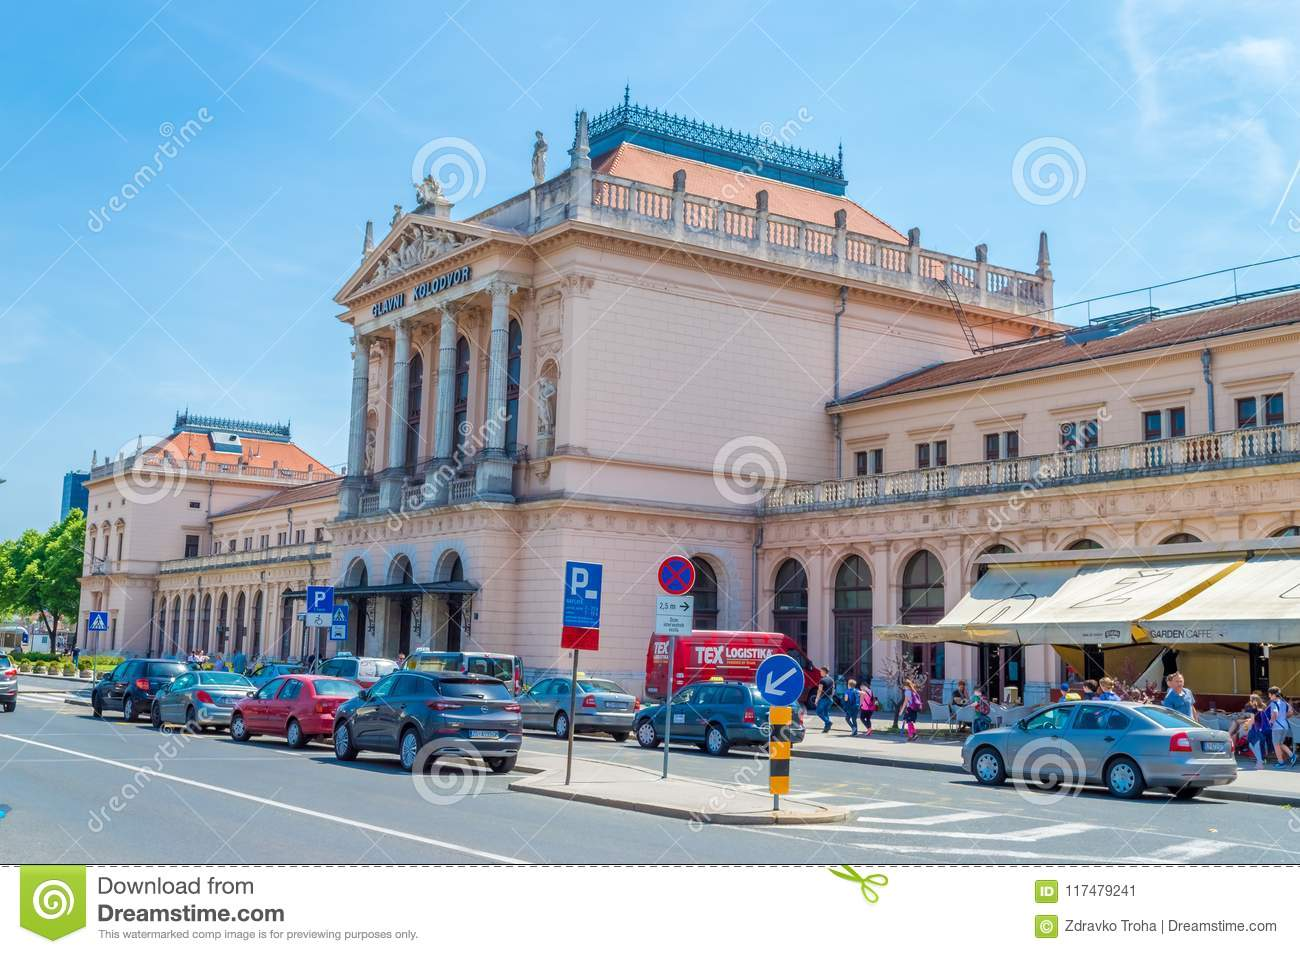 Building of Central railway station in Zagreb, Croatia